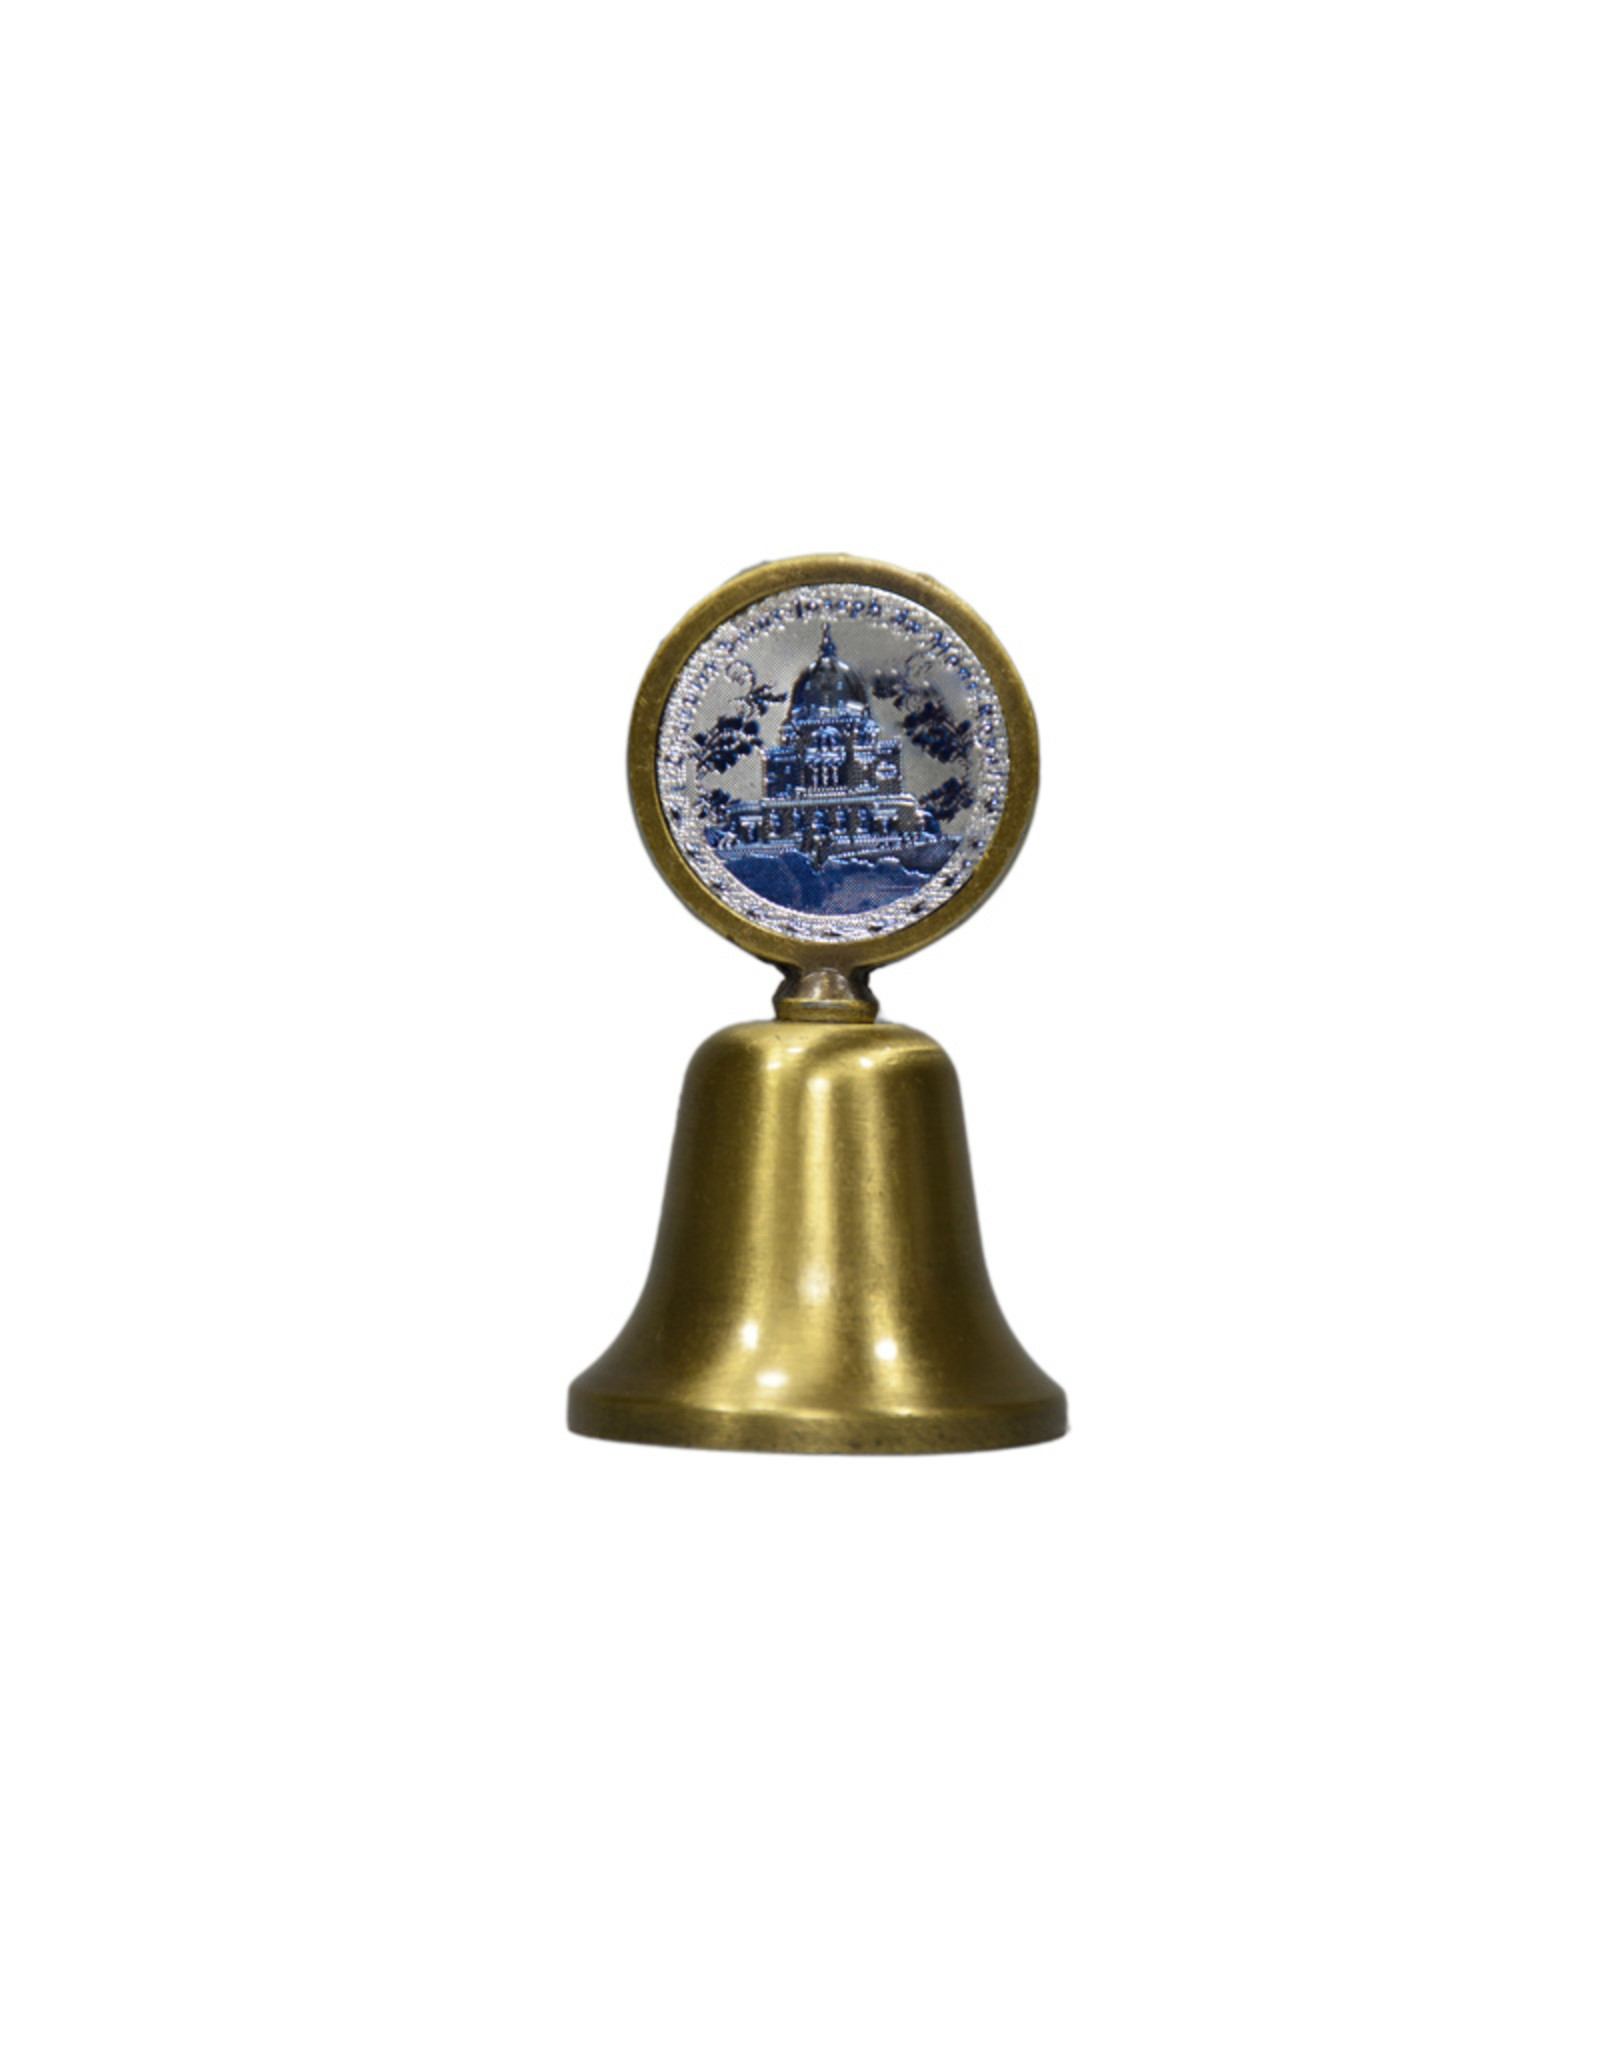 Small Oratory brass bell